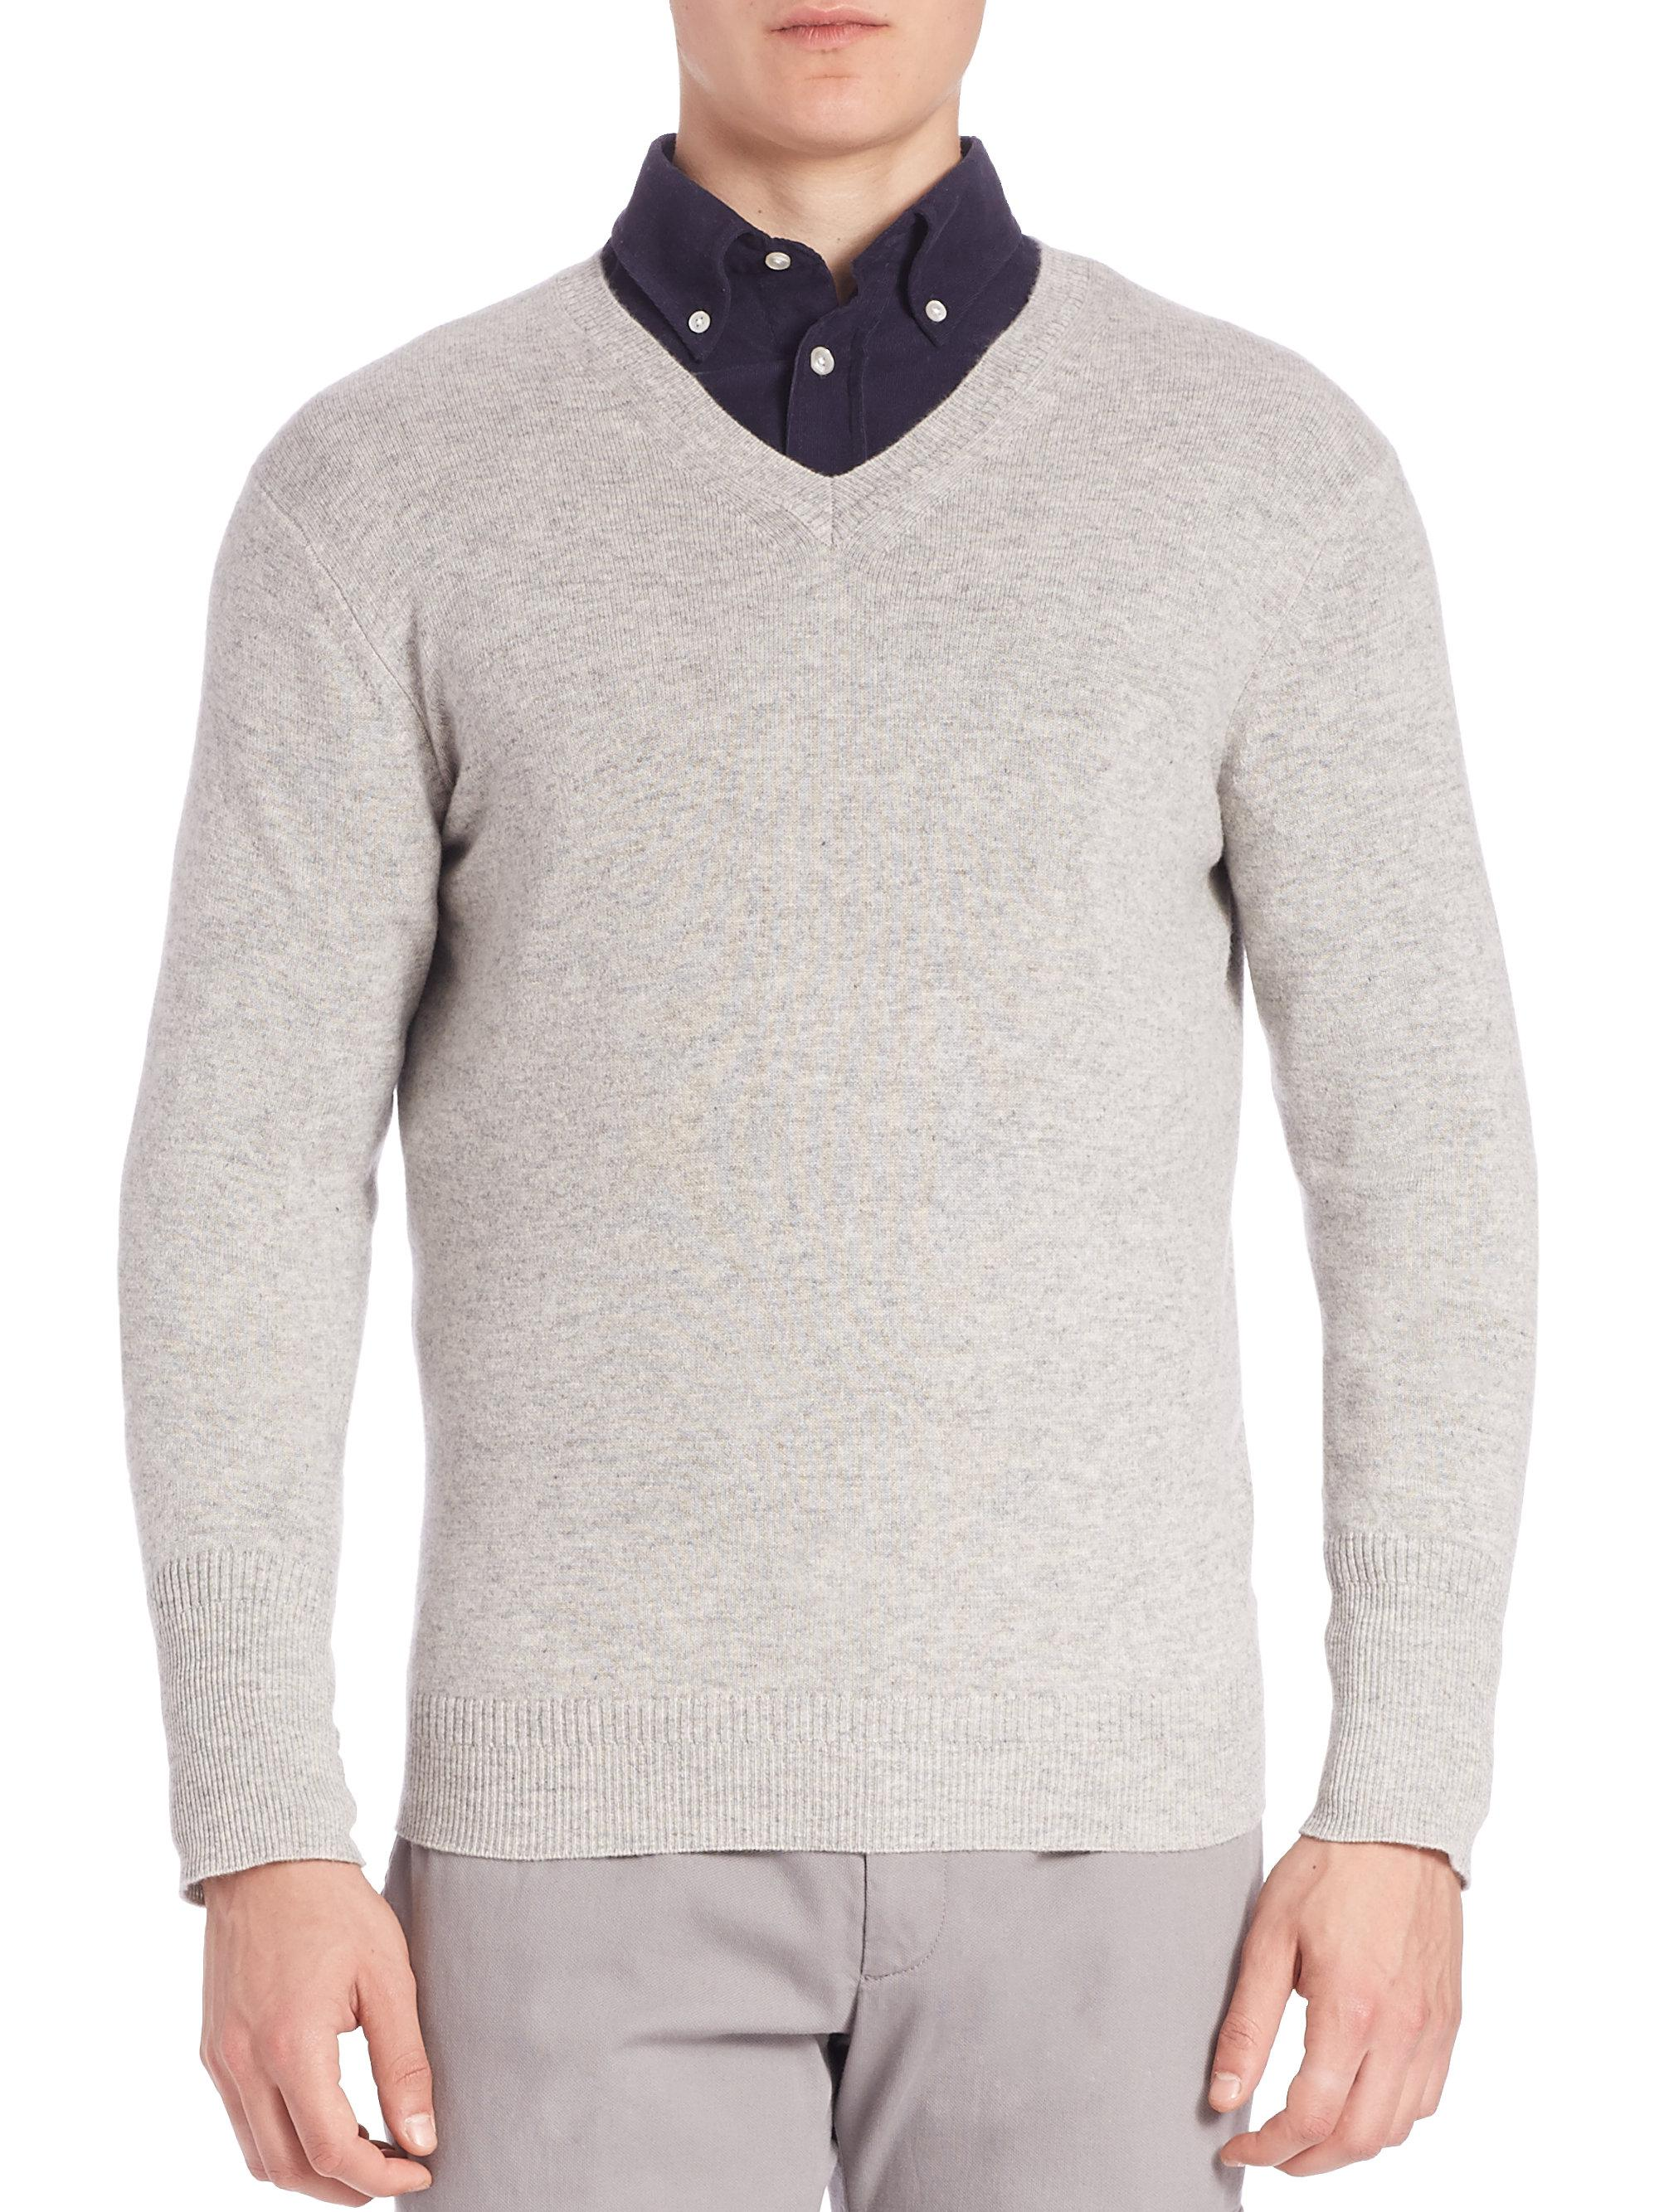 KNITWEAR - Jumpers Fa?onnable Cheap Sale Best Discount Cheapest Price Sale Manchester Great Sale Clearance Pre Order q6ViSY4xEM